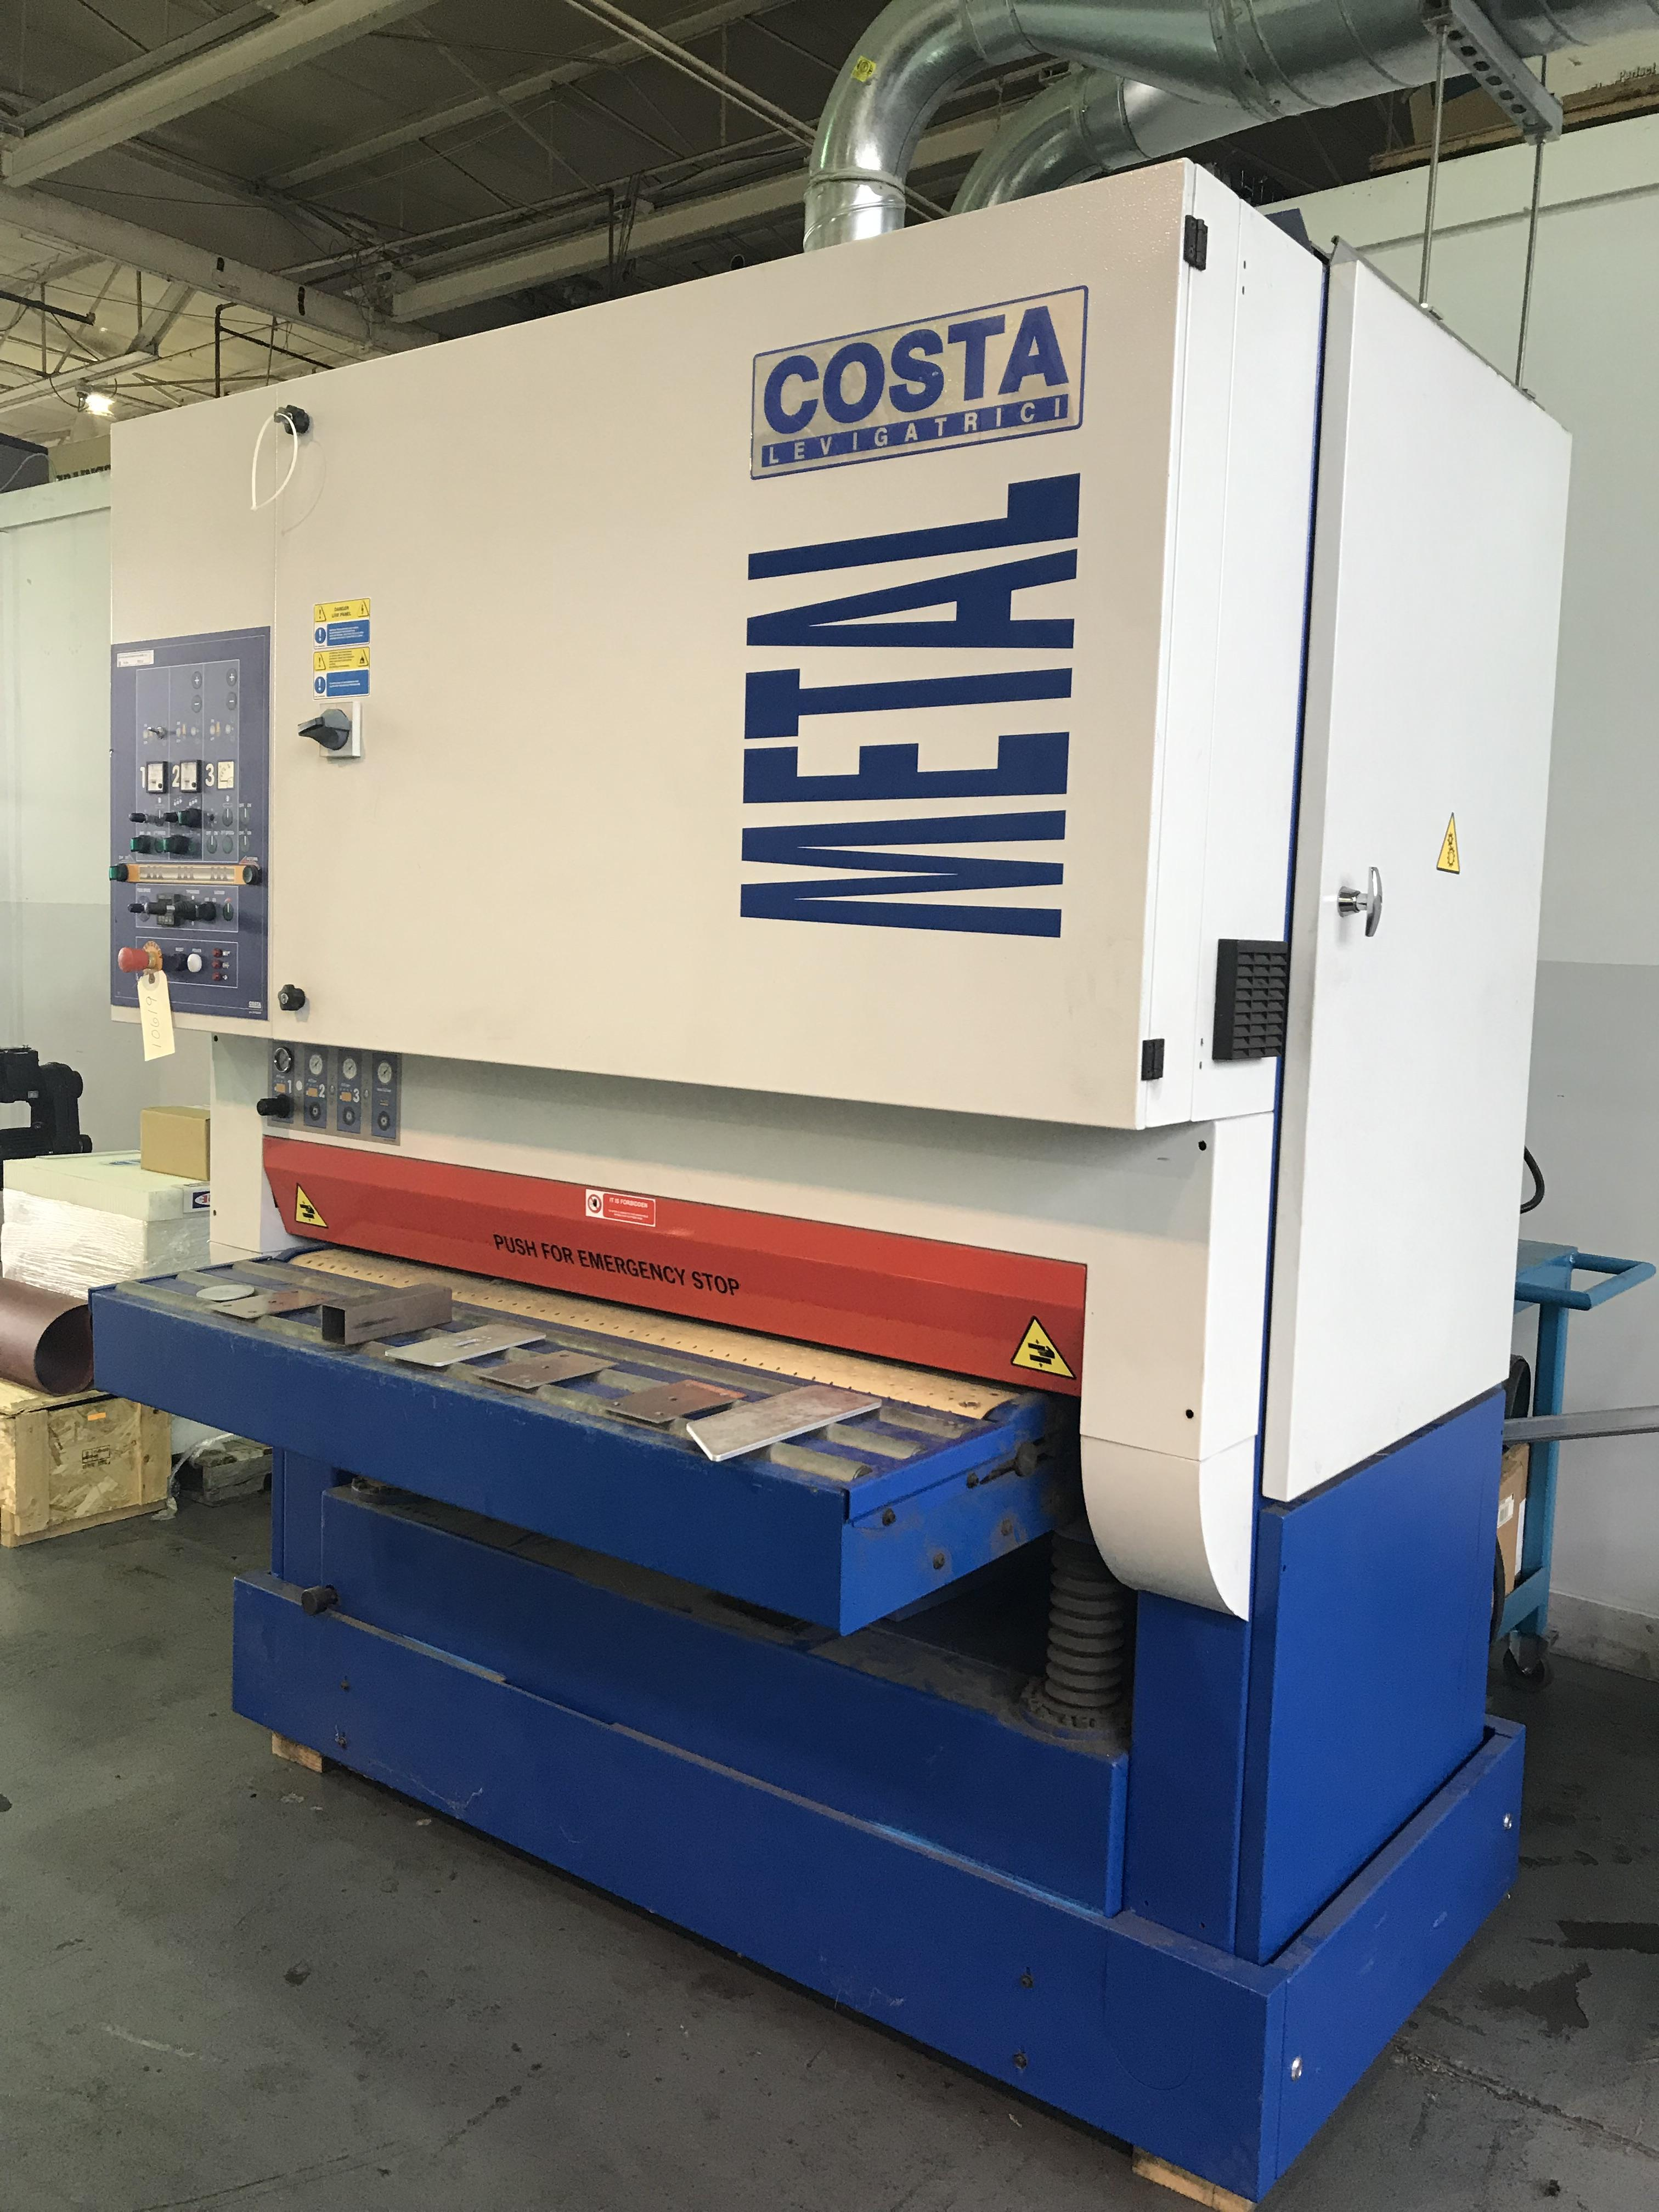 USED COSTA MODEL MD5-CV-1350 WIDE BELT DEBURRING AND FINISHING MACHINE, YEAR 2014, STOCK NO. 10619